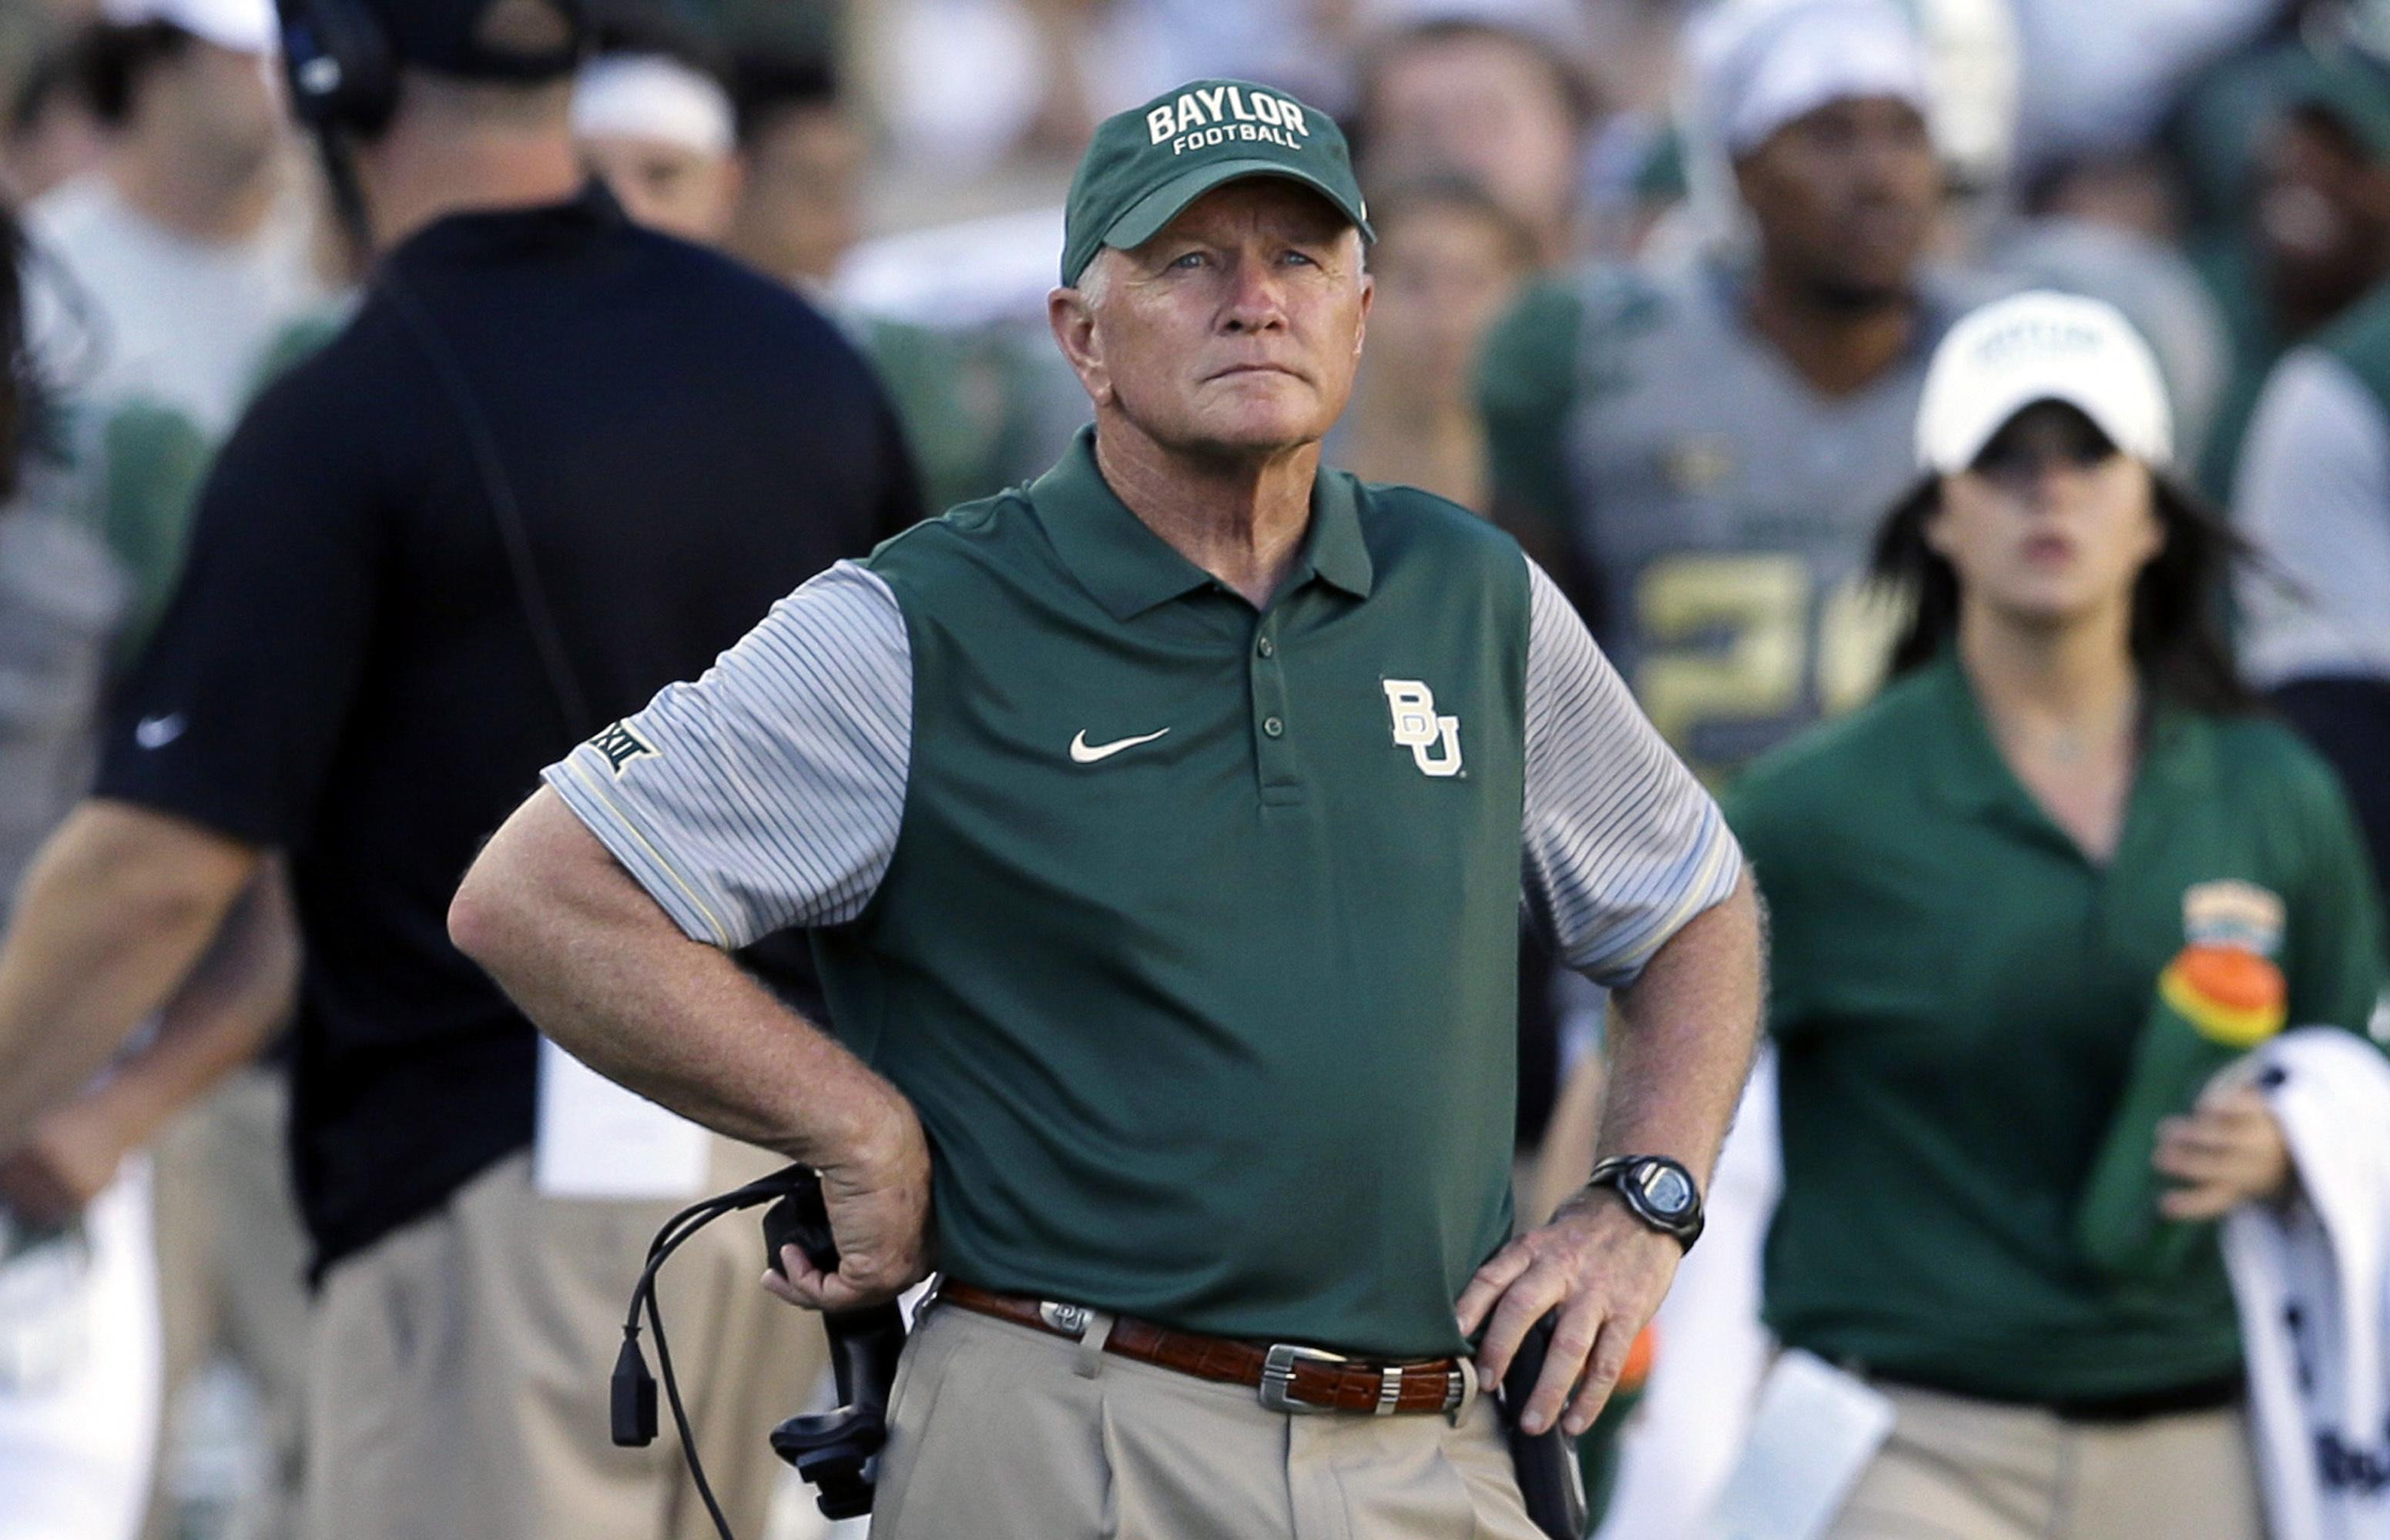 Baylor's Jim Grobe has no plans to coach after this season ...